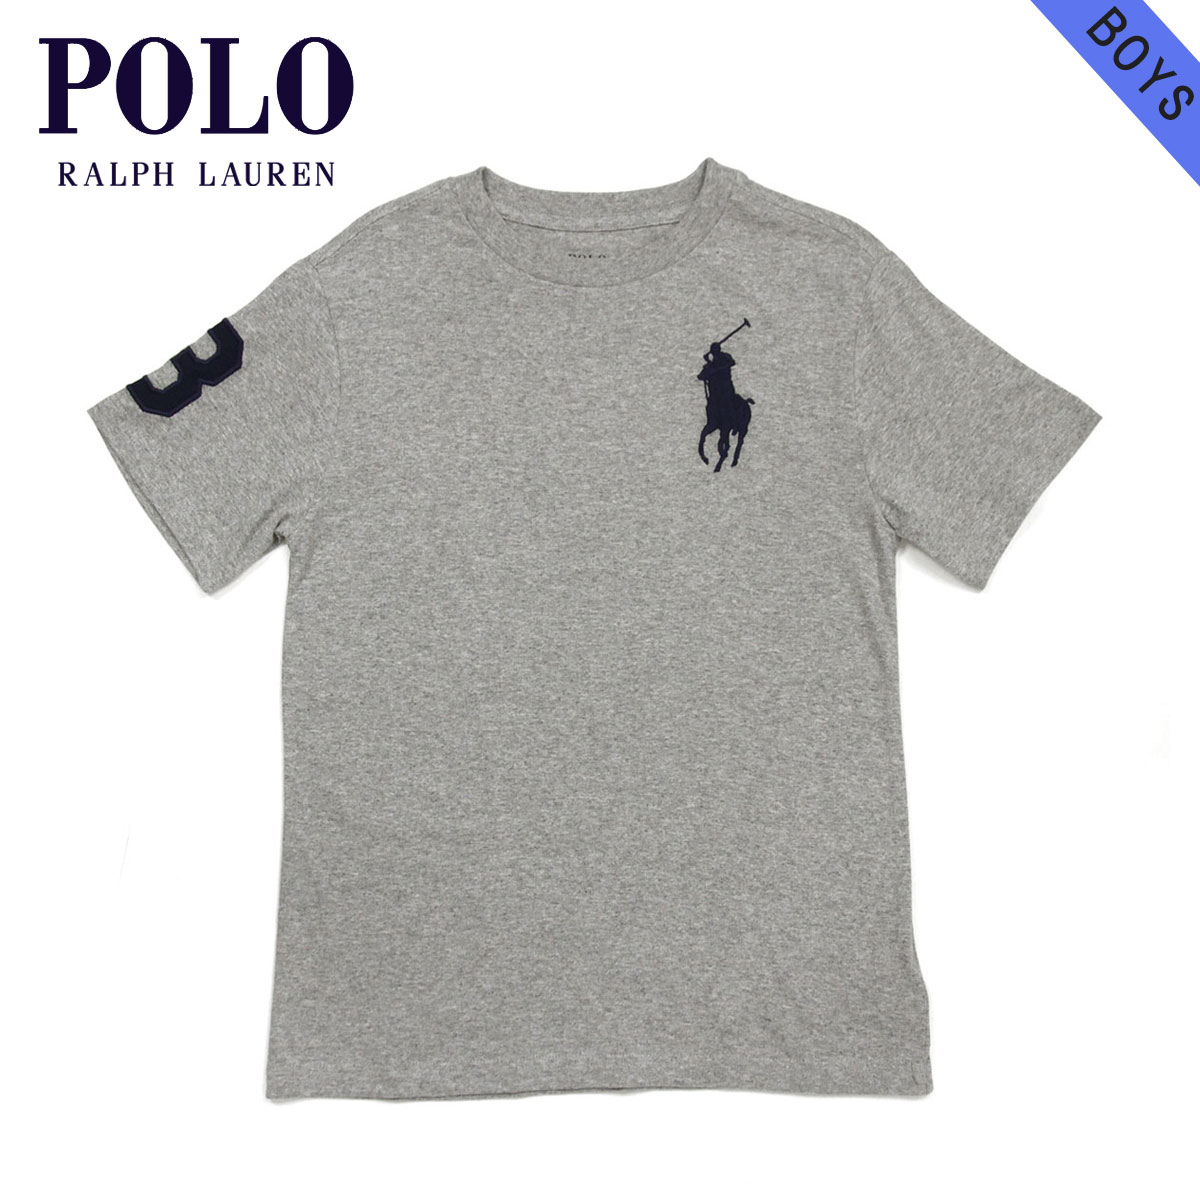 Regular Boys T Shirt Polo Ralph Article Clothes Big Pony Short Tee Lauren Kids Children's Sleeves Children E9IbD2eWHY